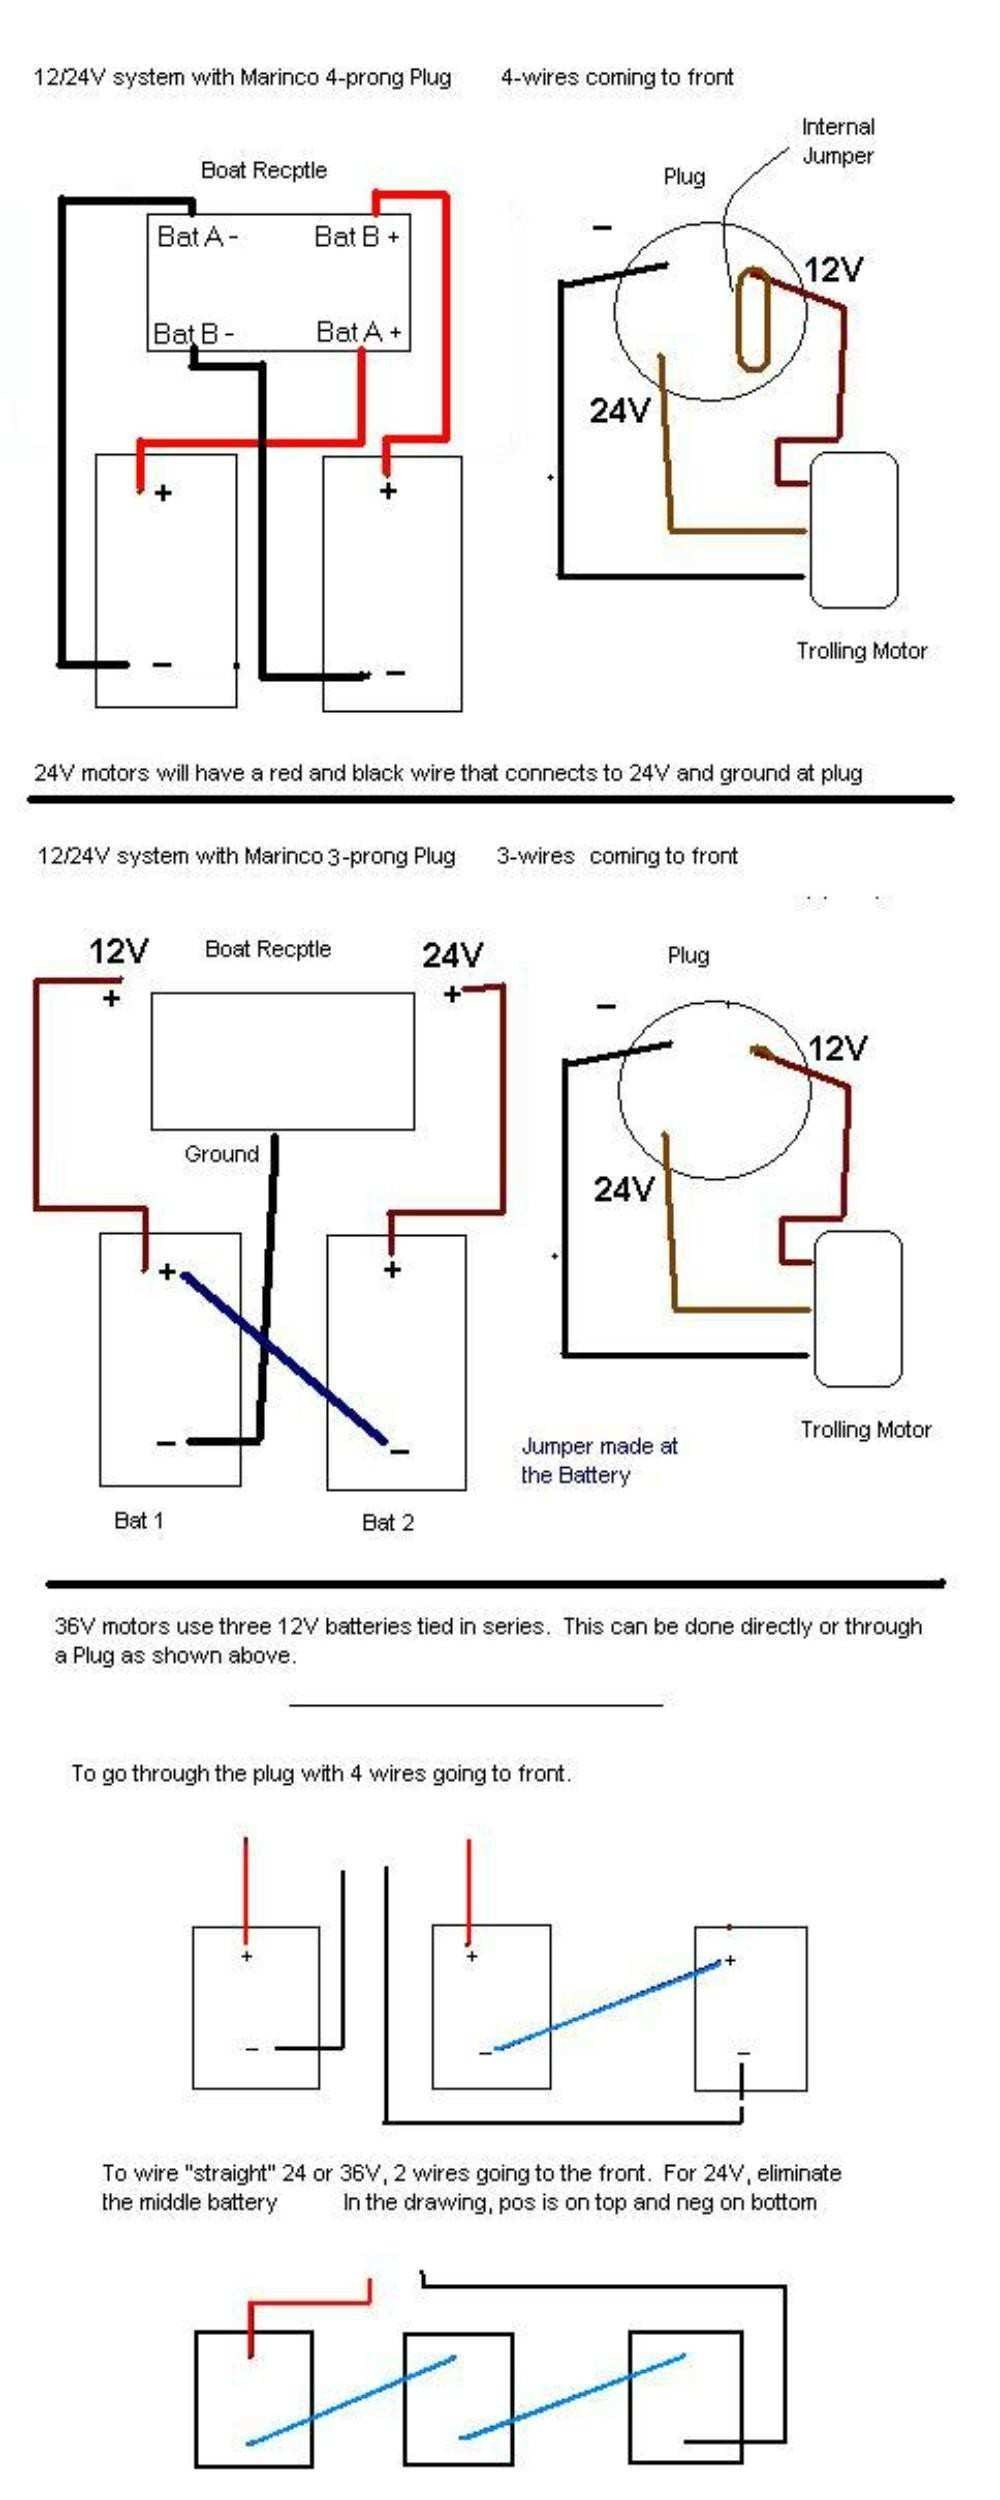 hight resolution of wiring 24 36 volt switchable trolling motor diagram data wiring wiring 24 36 volt switchable trolling motor diagram